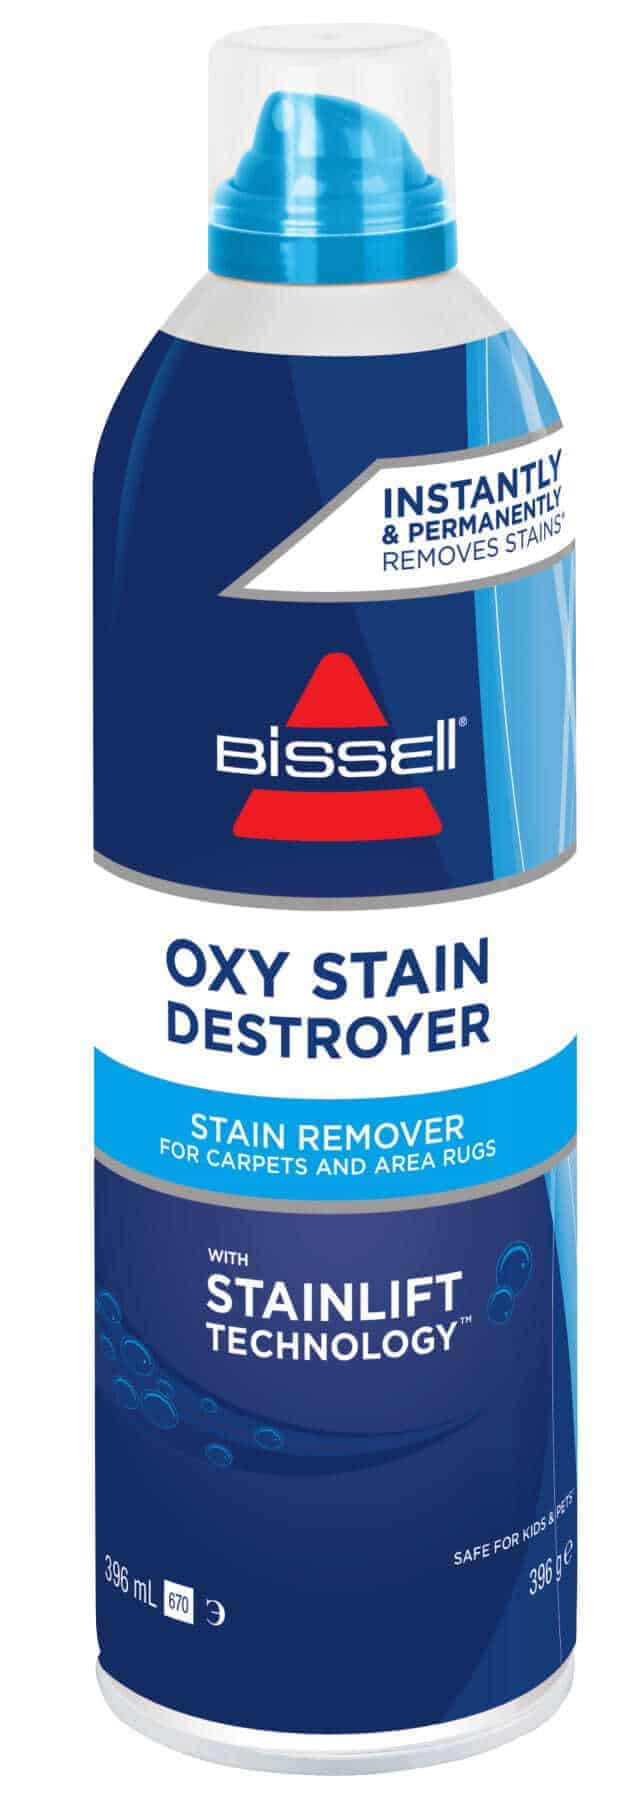 Bissell Oxy Stain Destroyer